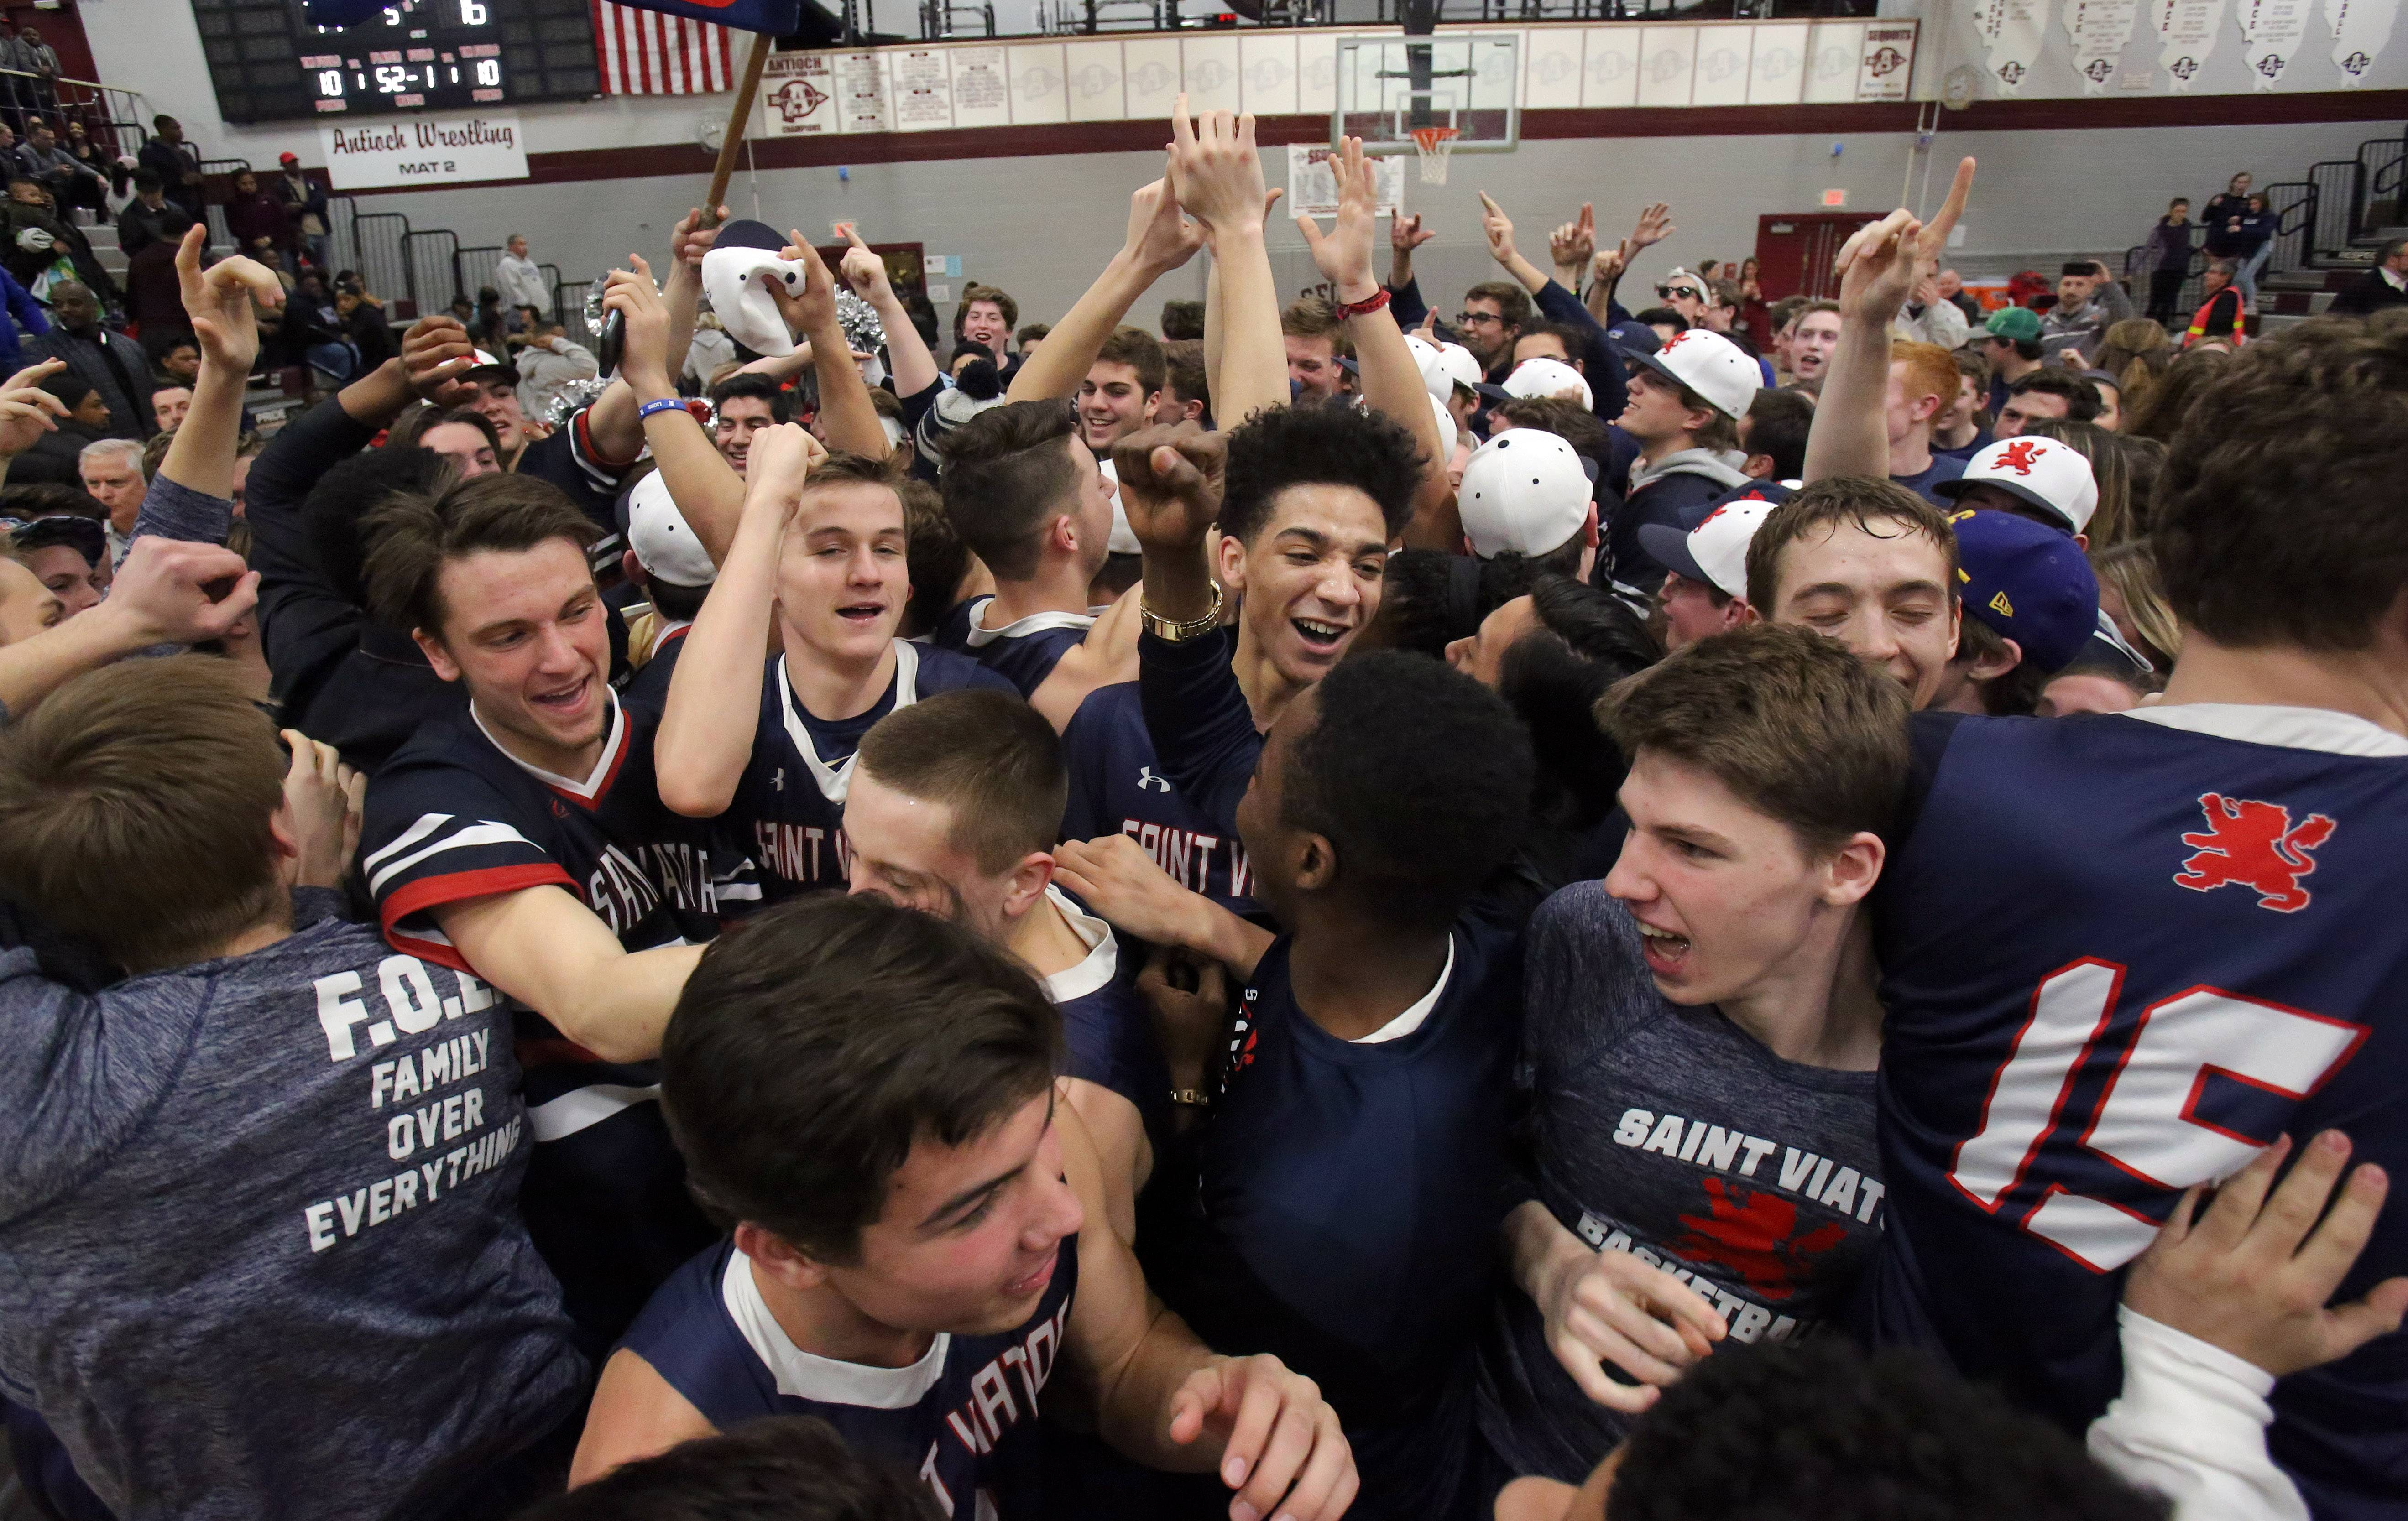 St. Viator players celebrate with their fans after their overtime win against North Chicago in the Class 3A sectional final at Antioch on Friday.